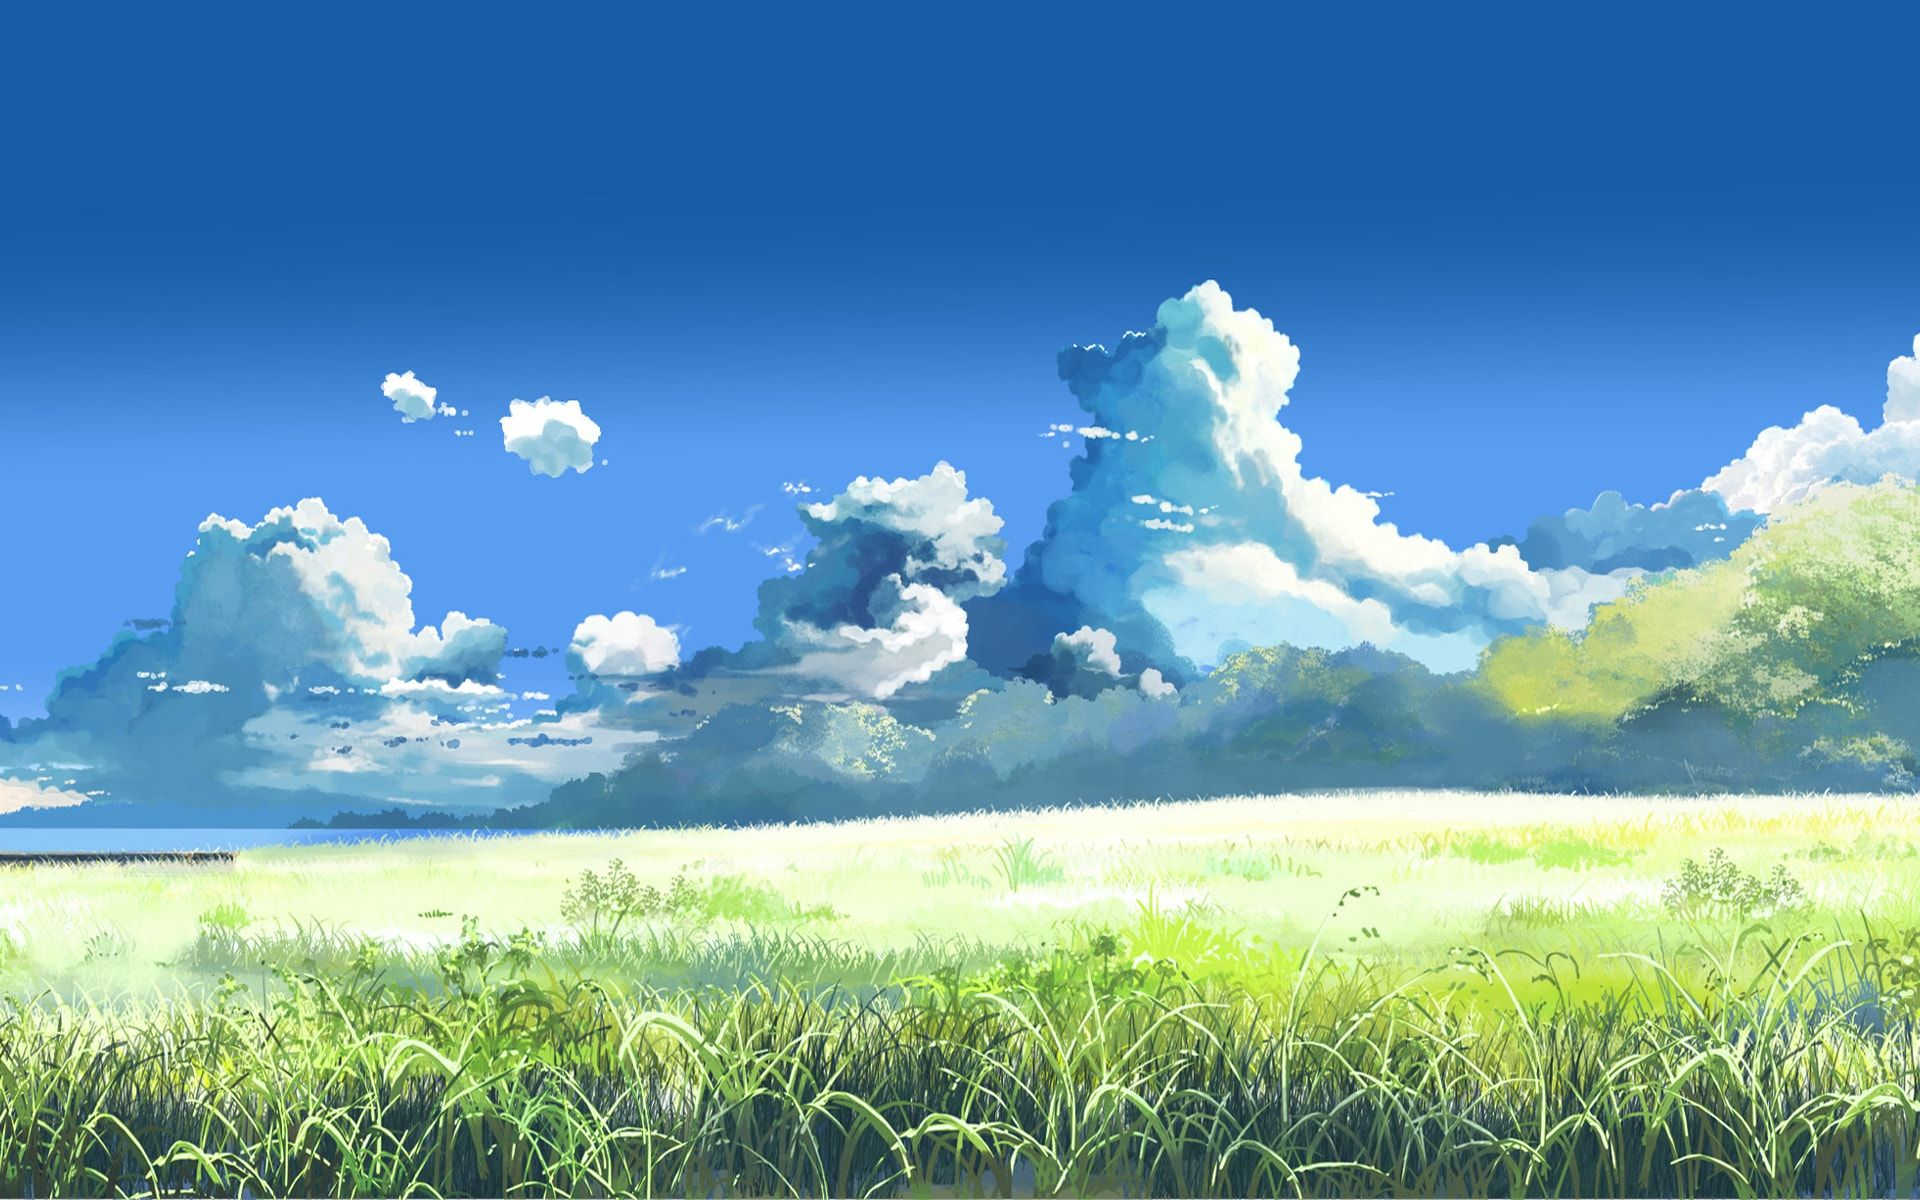 4k Wallpaper Anime Landscape Hd Art Wallpaper In 2020 Anime Scenery Wallpaper Anime Scenery Hd Anime Wallpapers